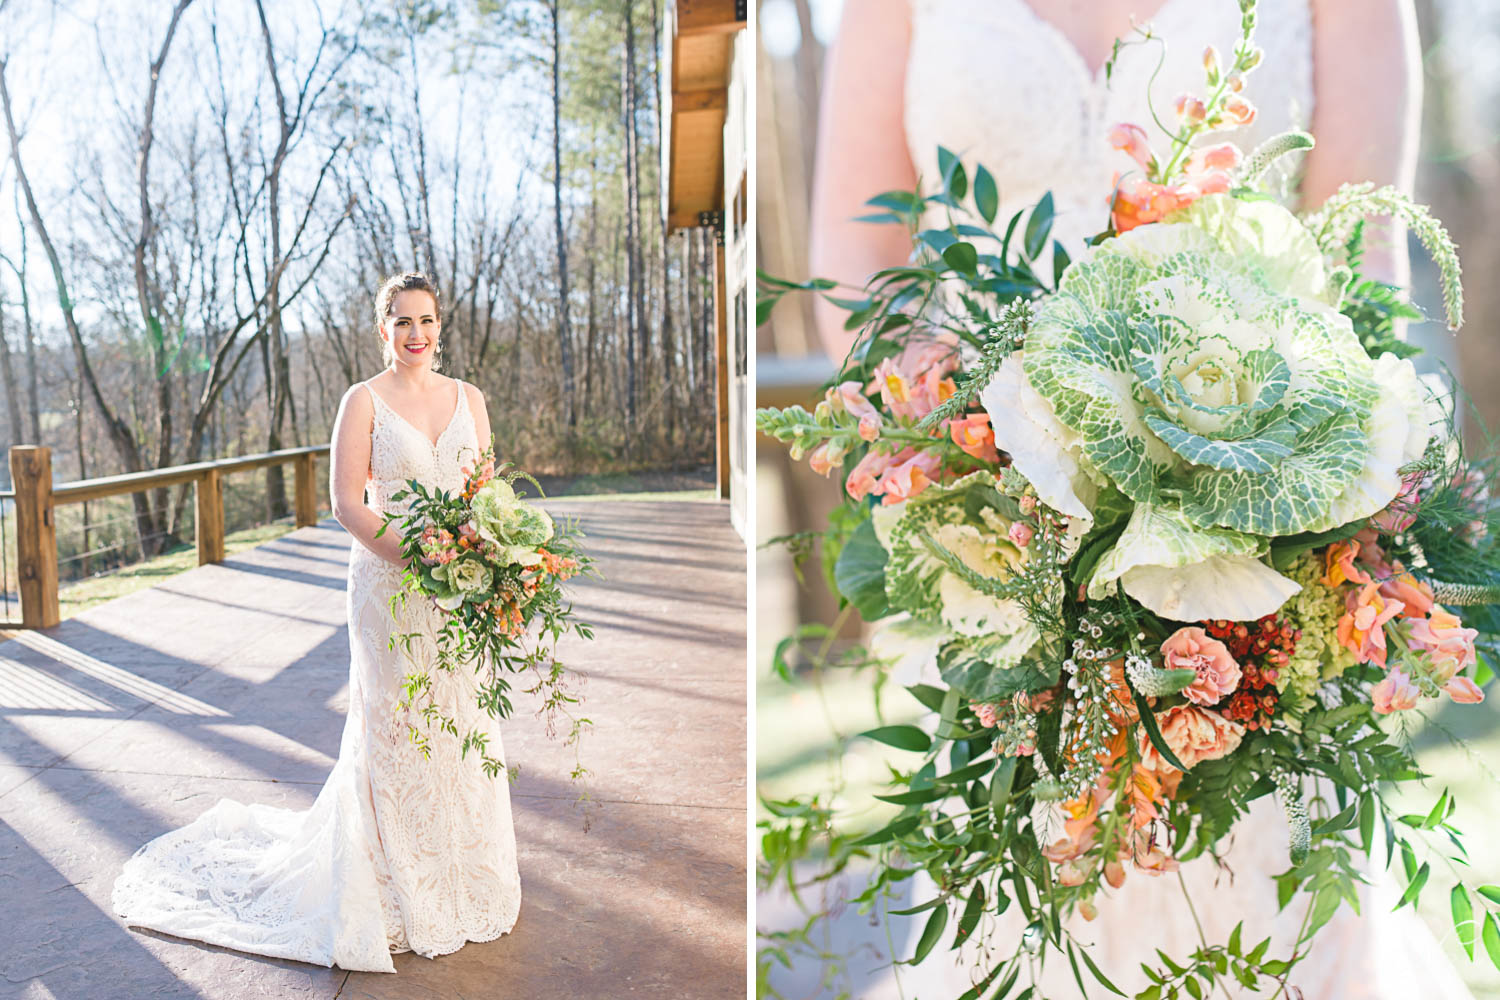 bride stanging on patio at Hiwassee River weddings and close up photo of her huge bouquet made by Fox and fern Florist from Chattanooga